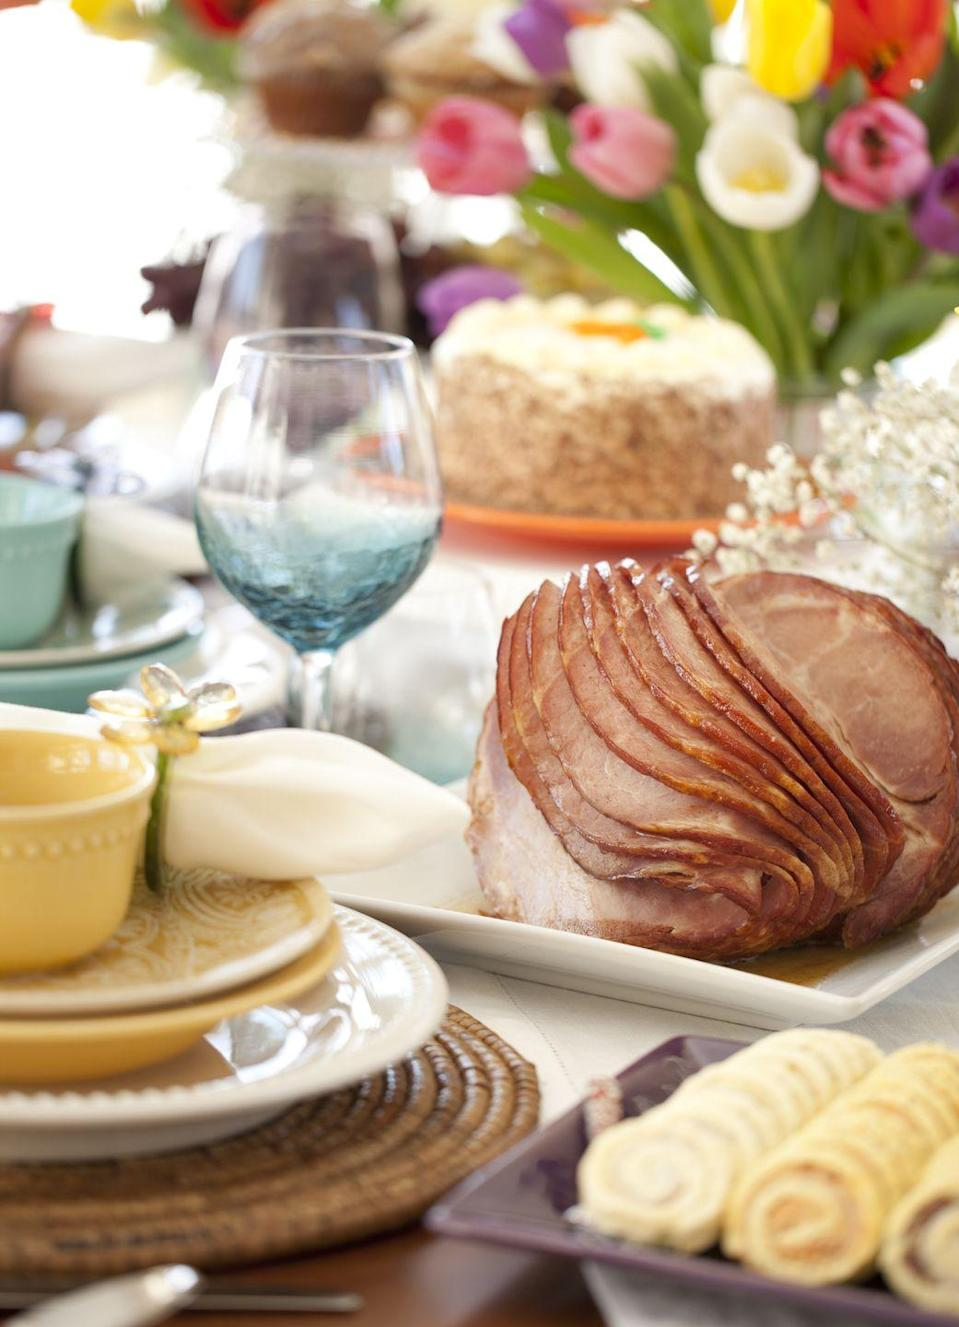 """<p>Although the choice of what to serve for Easter dinner might come down to taste preference, for others the menu holds great significance.</p><p>In early Jewish history, <a href=""""https://www.goodhousekeeping.com/food-recipes/a47680/spiced-lamb-dumplings-recipe/"""" rel=""""nofollow noopener"""" target=""""_blank"""" data-ylk=""""slk:lambs"""" class=""""link rapid-noclick-resp"""">lambs</a> were sacrificed as offerings to God and served regularly as part of the Passover feast. Then, when Jesus died during Passover, he represented the ultimate sacrifice for sin, the """"<a href=""""https://www.thespectrum.com/story/life/2018/04/06/music-times-lamb-god-transformative-engaging-experience/494276002/"""" rel=""""nofollow noopener"""" target=""""_blank"""" data-ylk=""""slk:lamb of God"""" class=""""link rapid-noclick-resp"""">lamb of God</a>,"""" and the animal evolved into a potent symbol for Christians, especially at Easter. Many Orthodox Christians still follow the Jewish Orthodox customs of not eating any pork, so lamb takes center stage at their Easter meal.</p><p>Others, however, wouldn't imagine Easter without <a href=""""https://www.goodhousekeeping.com/holidays/easter-ideas/g881/ham-recipes/"""" rel=""""nofollow noopener"""" target=""""_blank"""" data-ylk=""""slk:ham"""" class=""""link rapid-noclick-resp"""">ham</a>. Symbolizing """"good luck"""" for many cultures around the world, it made a fitting meal at all sorts of celebrations, according to the <a href=""""http://religion.oxfordre.com/"""" rel=""""nofollow noopener"""" target=""""_blank"""" data-ylk=""""slk:Encyclopedia of Religion"""" class=""""link rapid-noclick-resp"""">Encyclopedia of Religion</a>. Some historians believe Easter's spring timing also factored into the choice: Farmers typically slaughtered pigs in the fall and then took several months to smoke the <a href=""""https://www.goodhousekeeping.com/food-recipes/easy/a47532/pork-chops-with-balsamic-braised-cabbage-and-apples-recipe/"""" rel=""""nofollow noopener"""" target=""""_blank"""" data-ylk=""""slk:pork"""" class=""""link rapid-noclick-resp"""">pork</a>, making a ham ready just in time for Easte"""